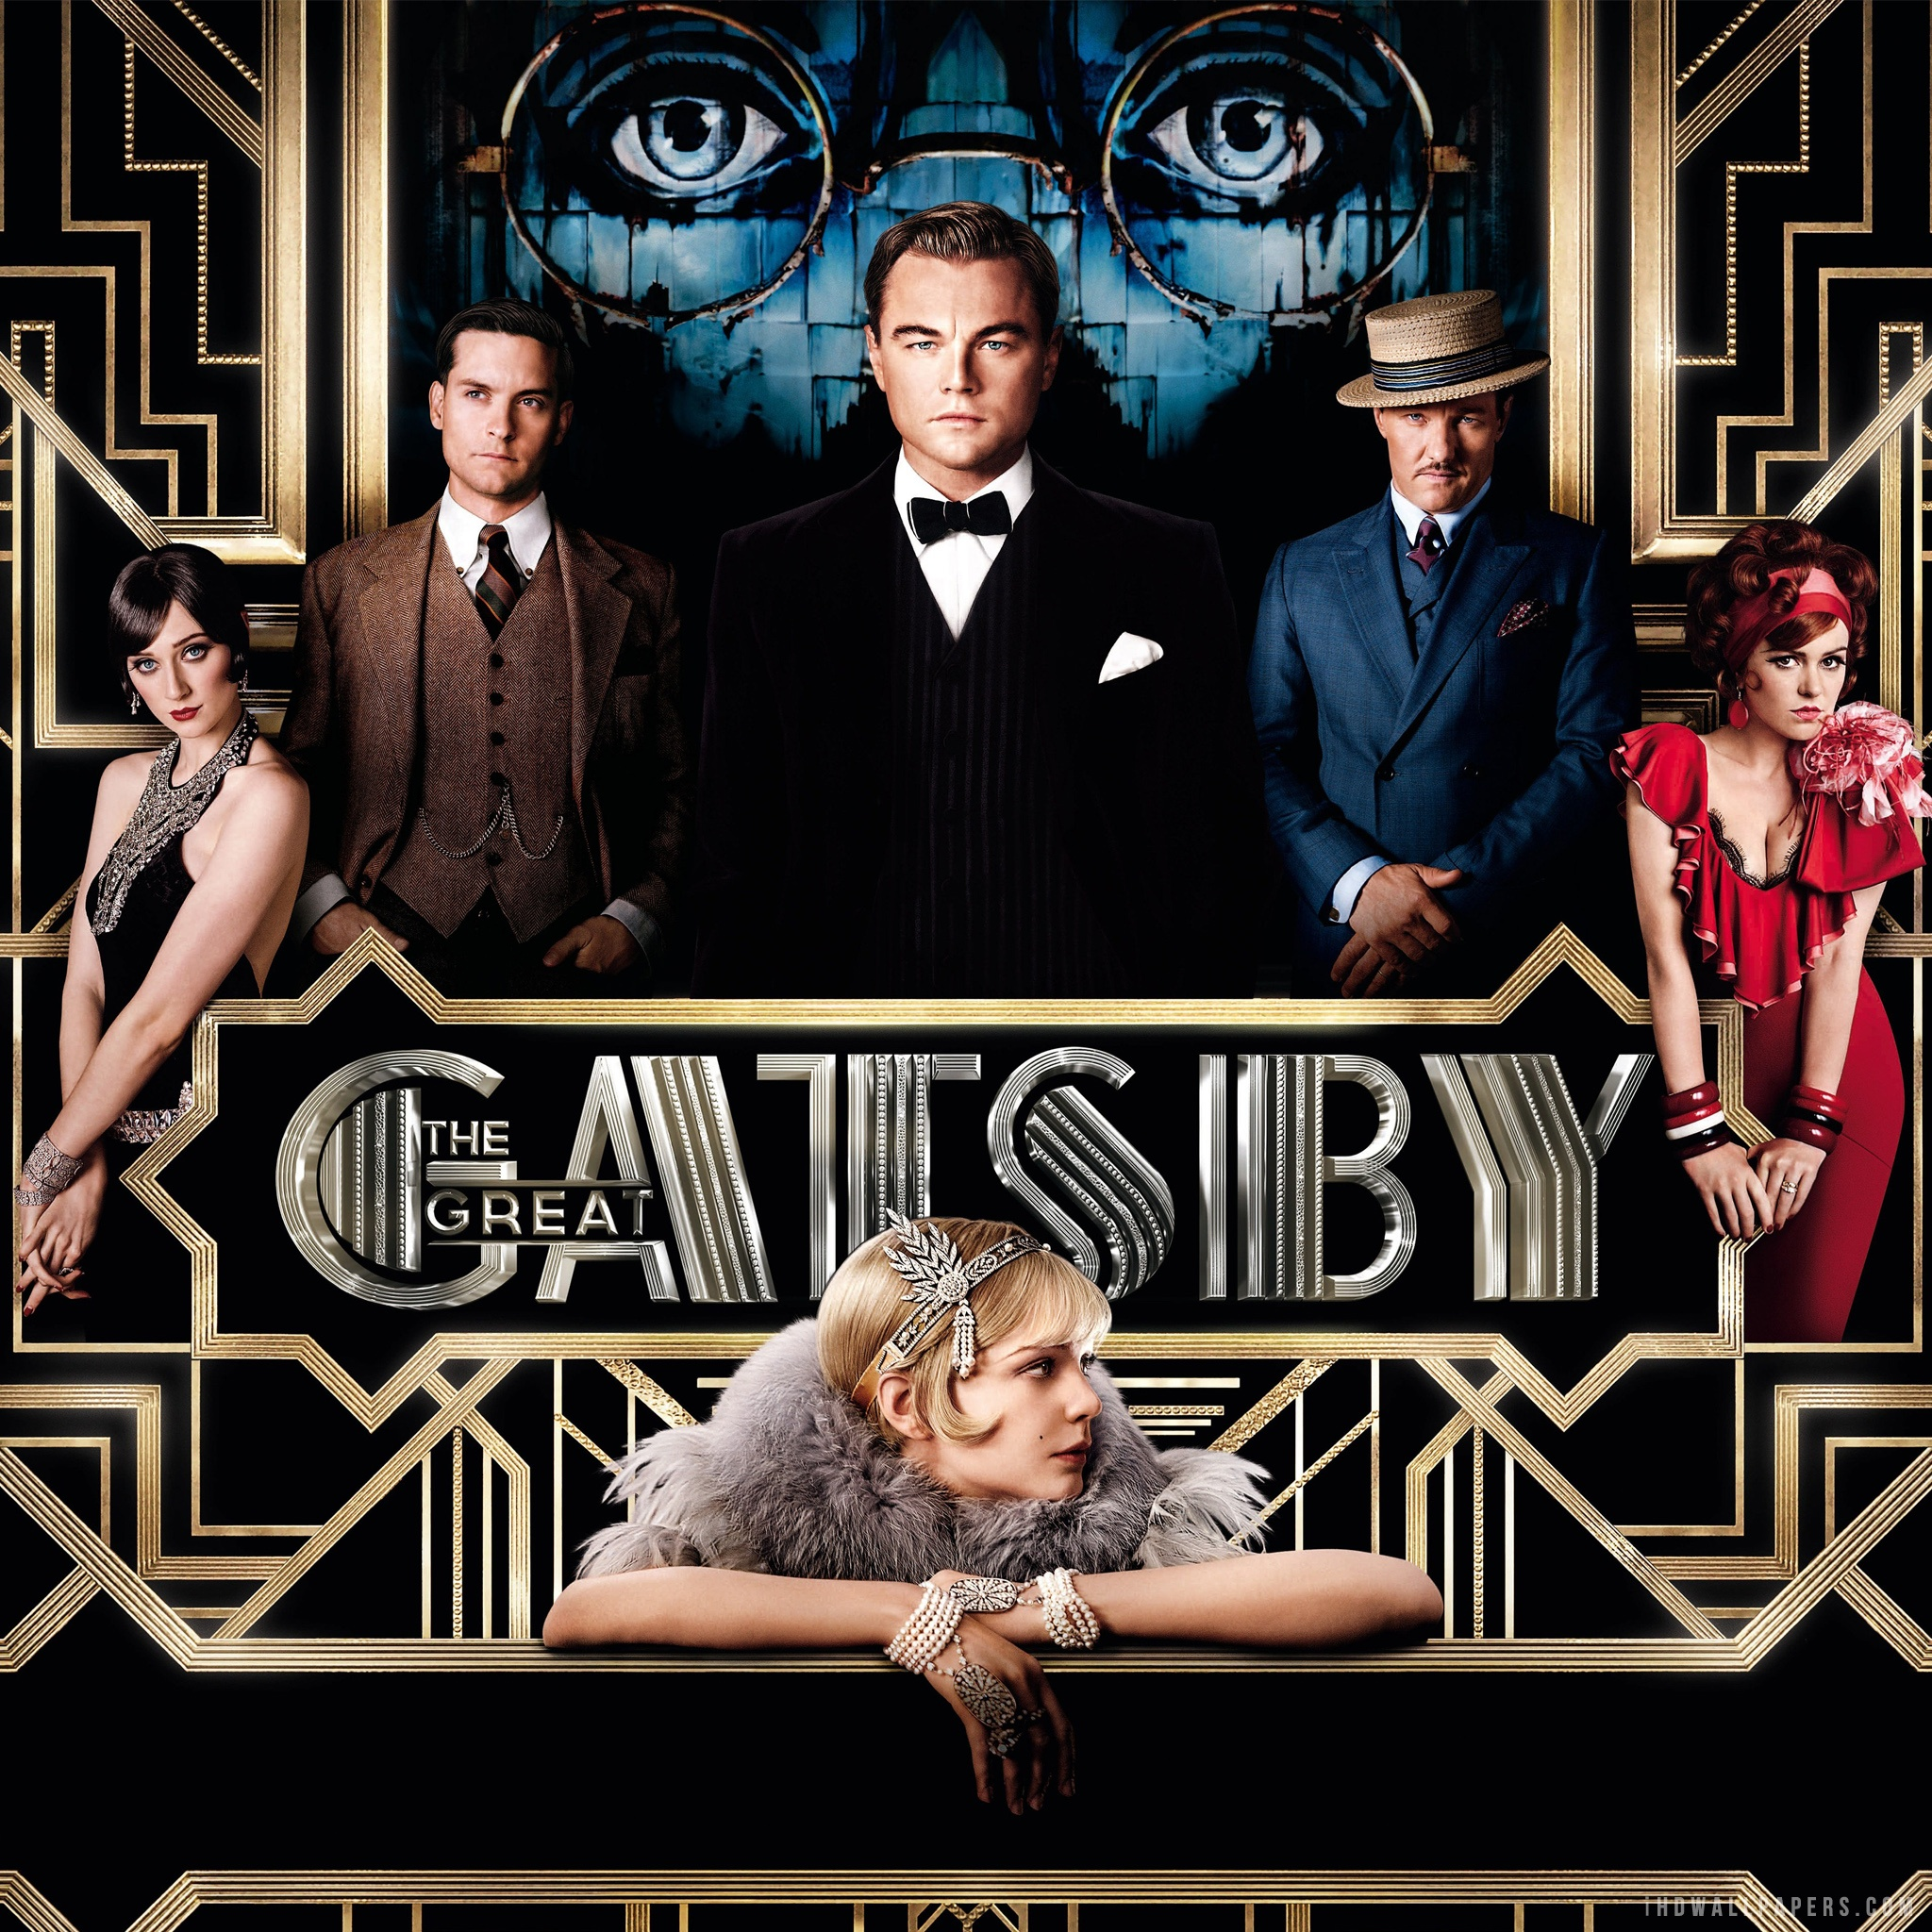 The Great Gatsby: The Great Gatsby Wallpaper